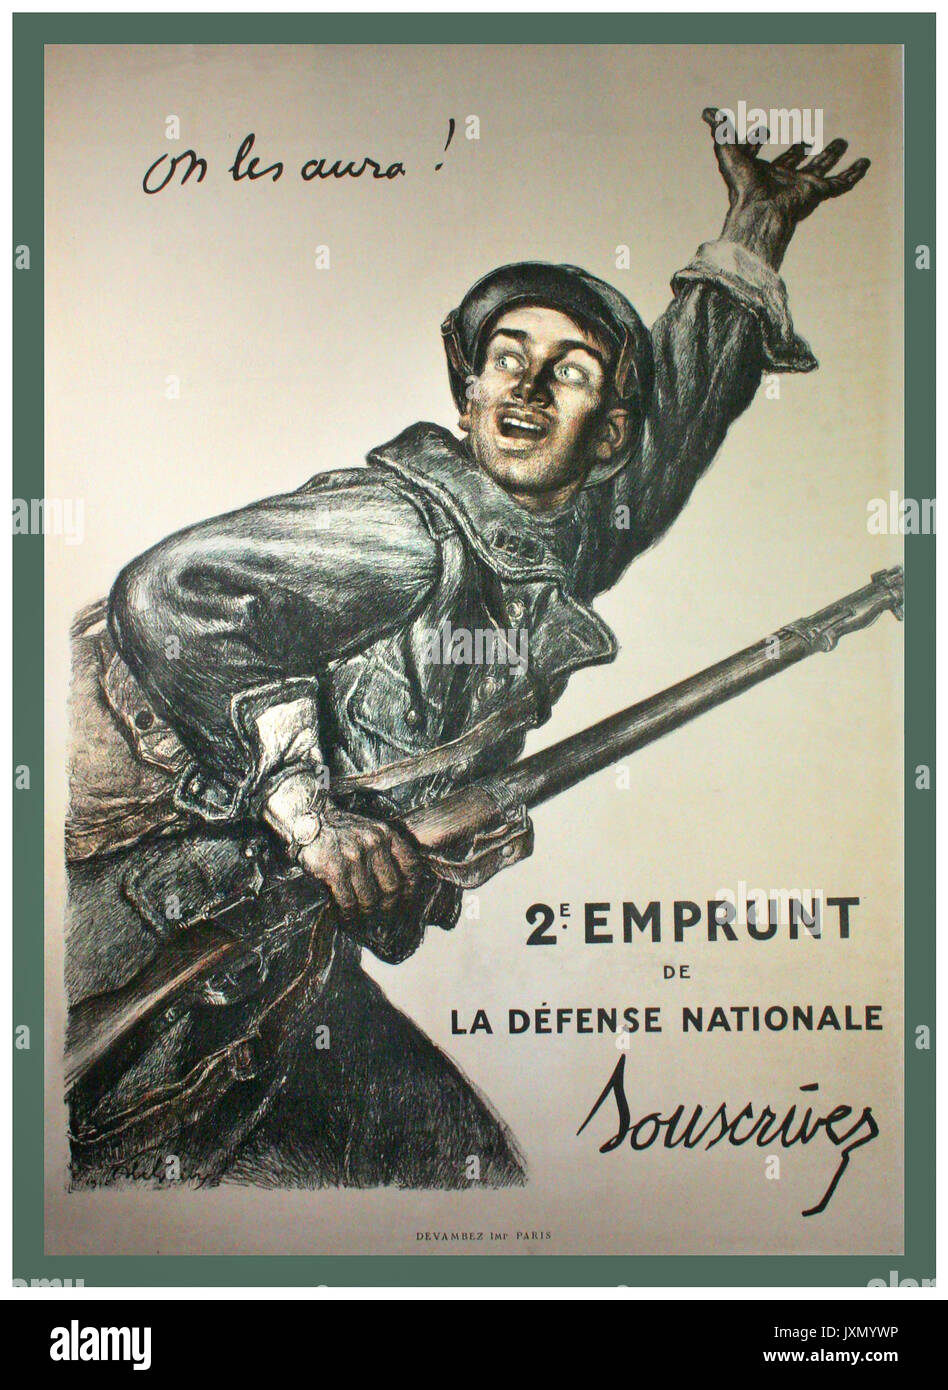 """VINTAGE WW1 French propaganda poster ON LES AURA ! 1916, """"Courage we shall get them"""", Original French World War 1 poster designed by Jules Abel Faivre  (1867-1945) for subscription to the 2nd national defense war fund. This image became one of the most famous propaganda poster images of the great war and was so popular that it was retitled and reused for the second world by the US Army. Abel Faivre earned more individual fame by his designs than any other French poster artist during the war and this image above all became the visual patriotic mascot for the French. - Stock Image"""